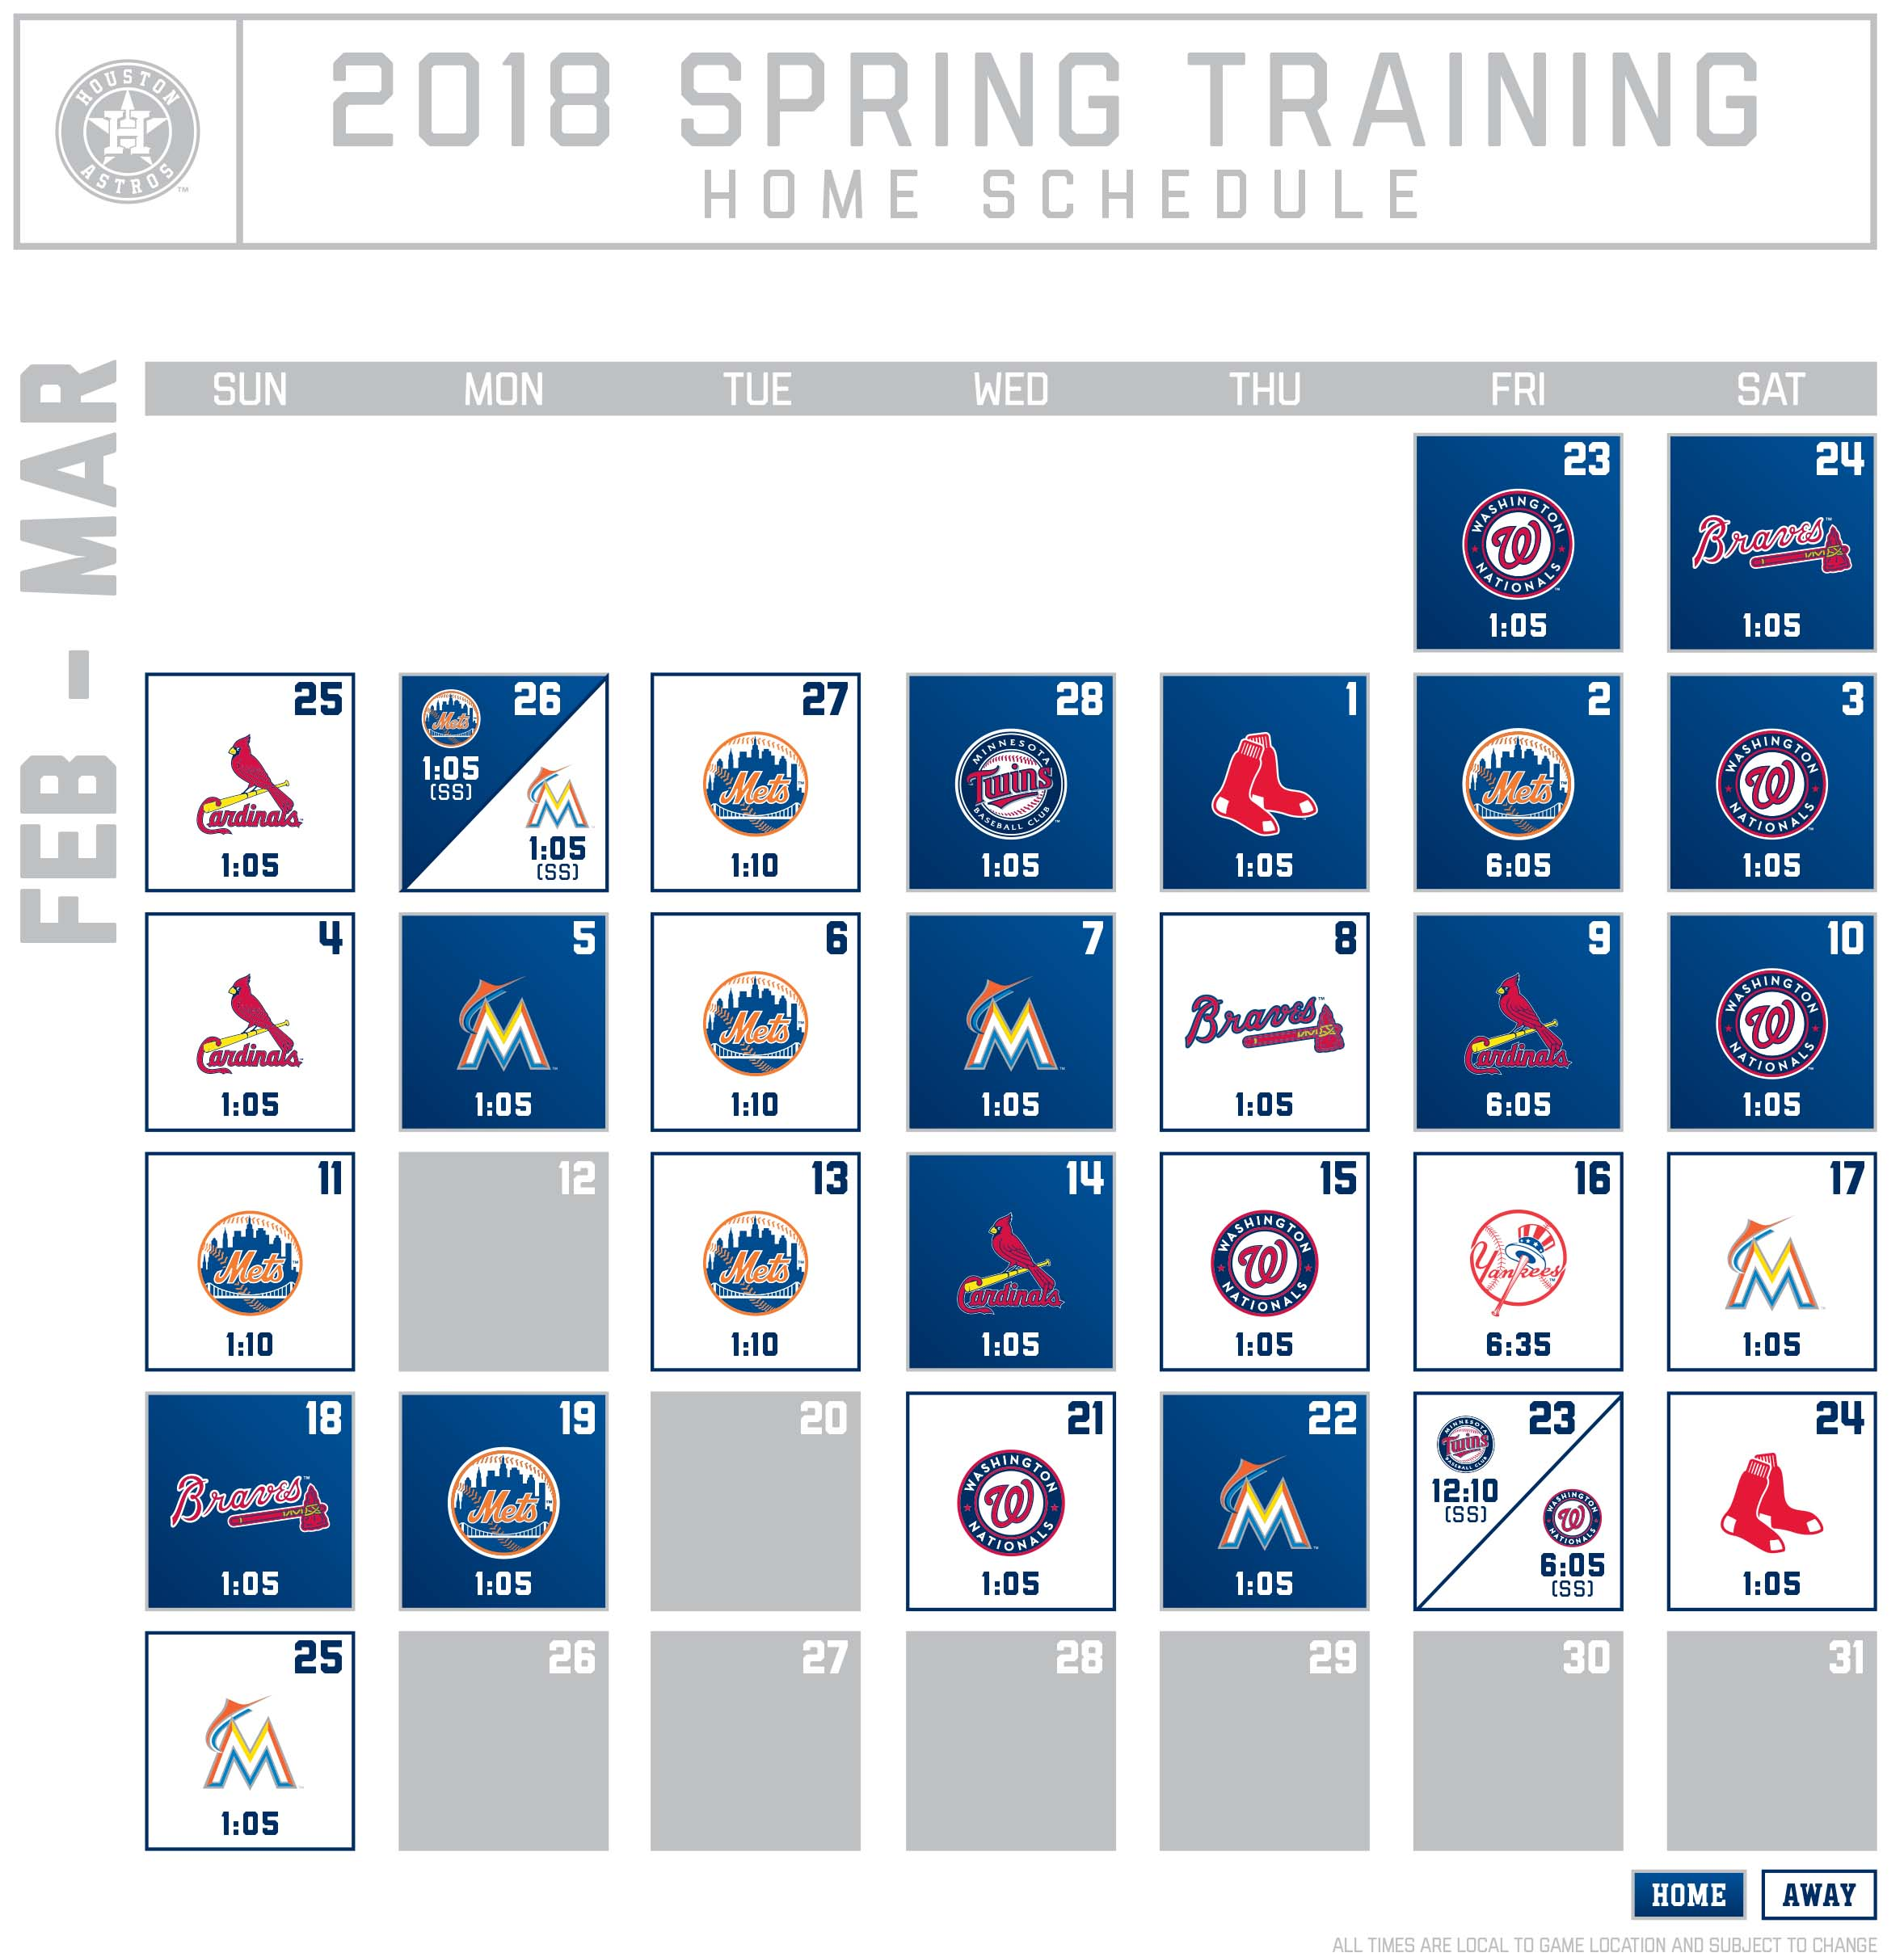 Cubs, White Sox Announce Spring Training Schedules, Will Meet 3 Times